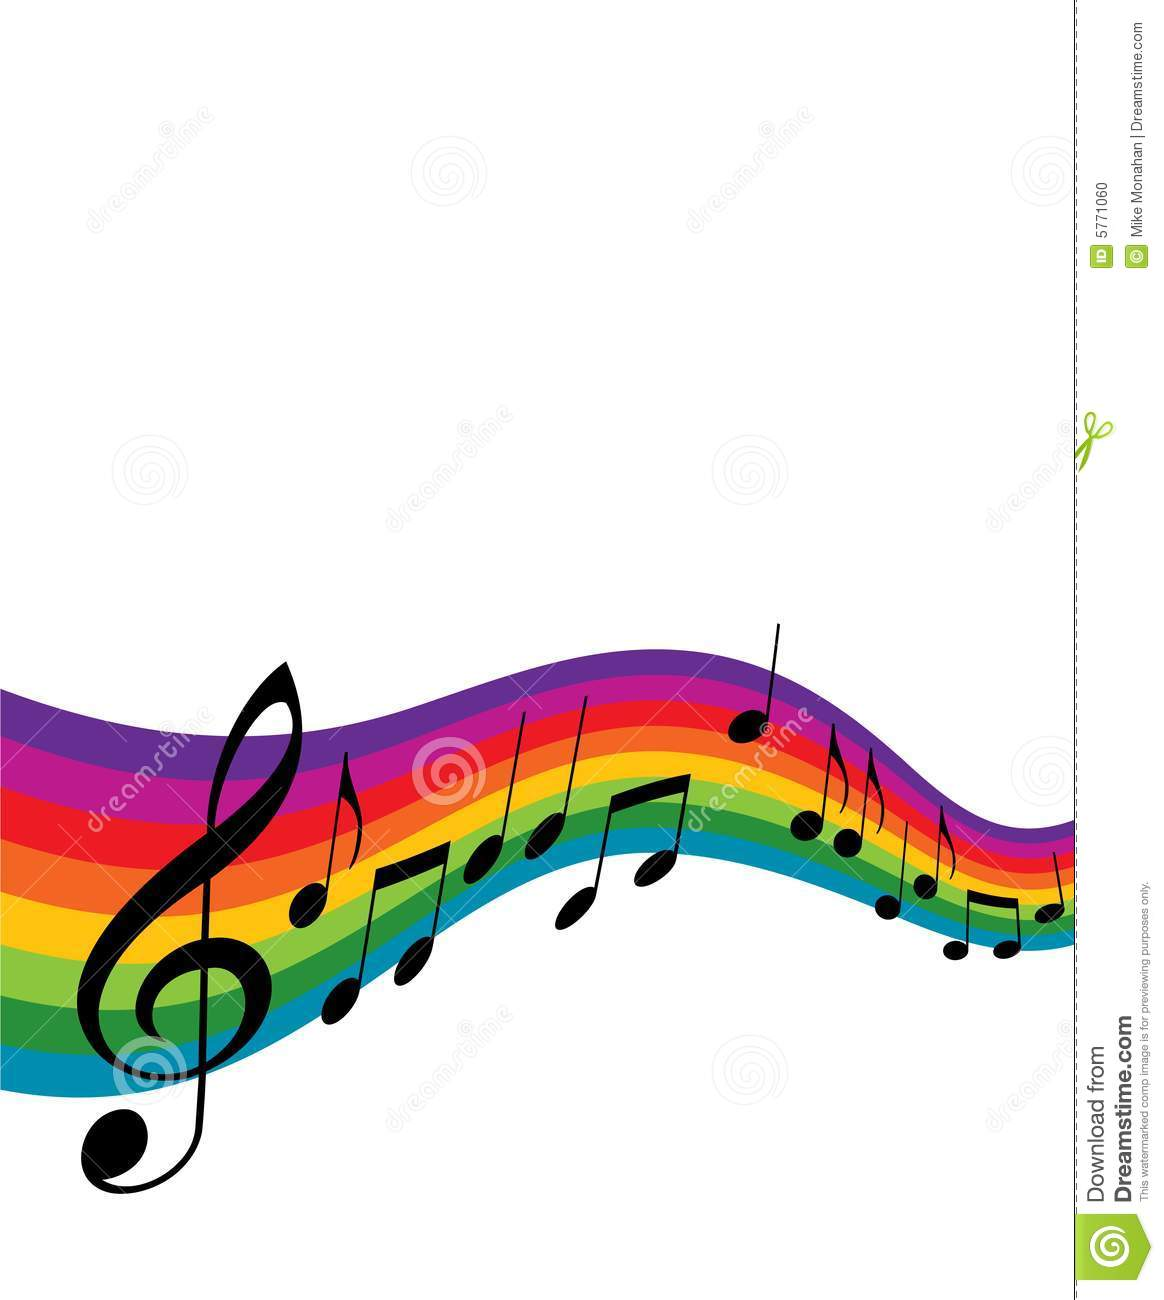 free clipart music notes at getdrawings com free for personal use rh getdrawings com